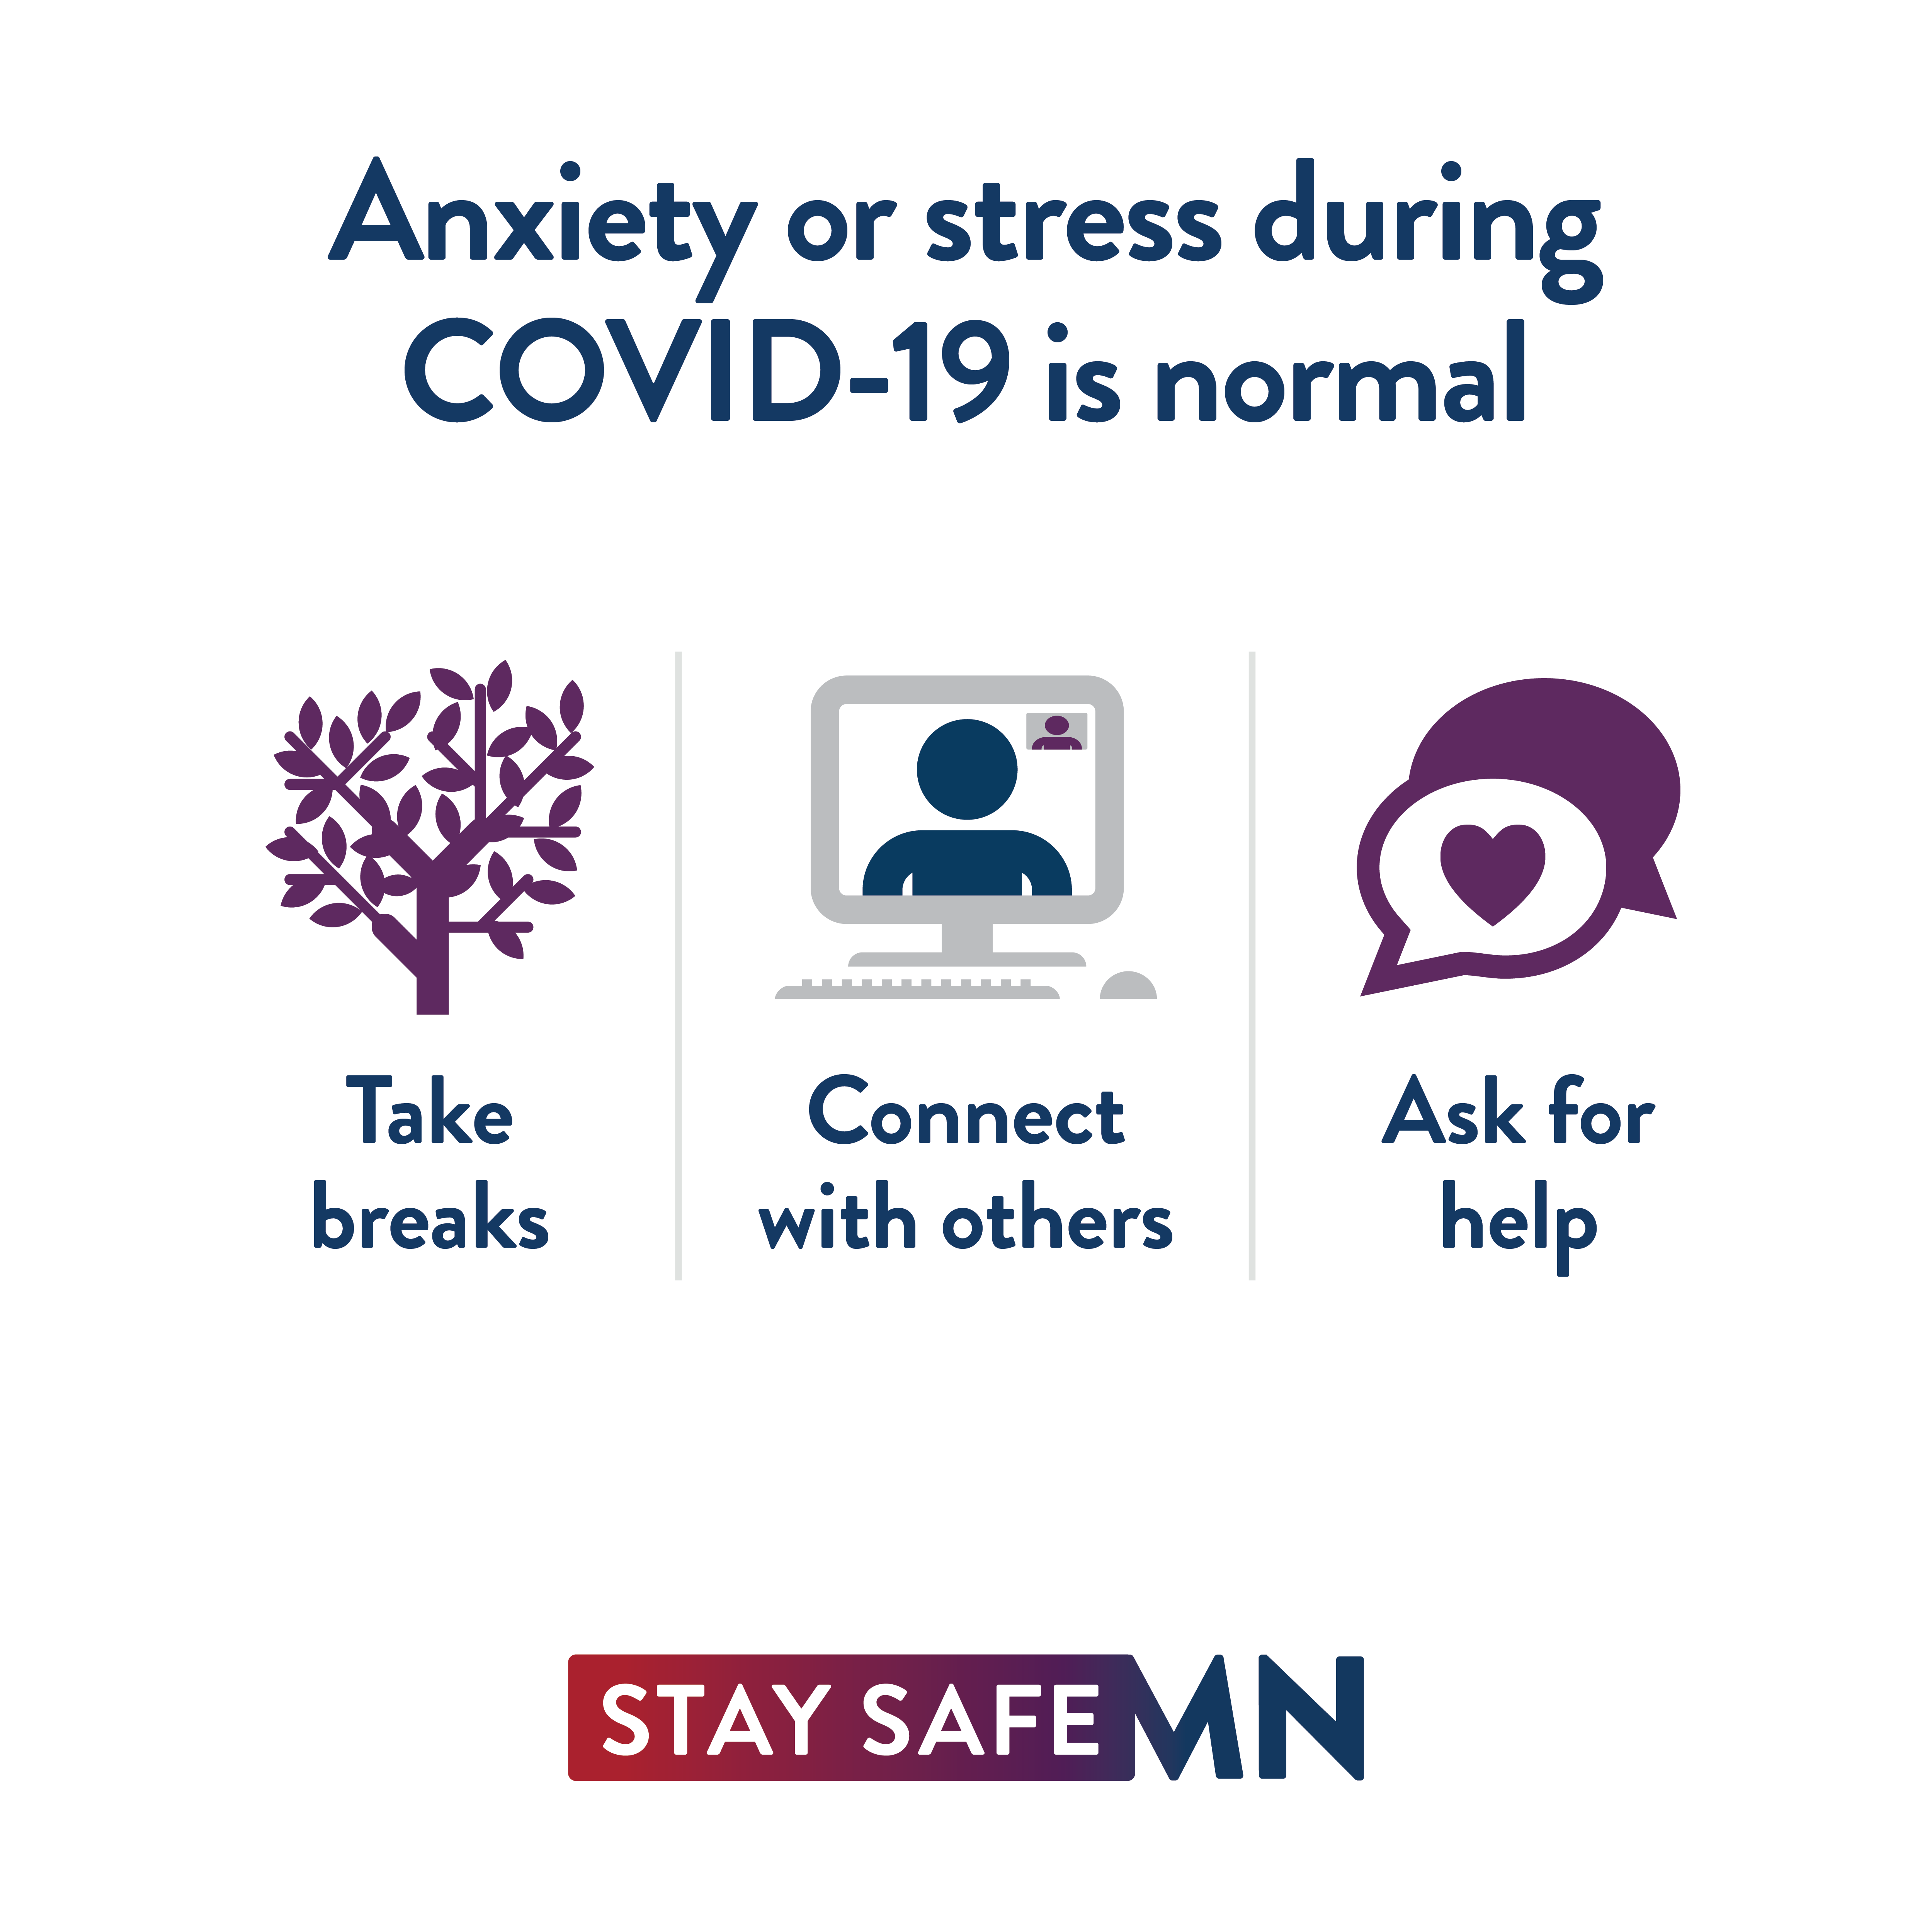 Anxiety or stress during COVID-19 is normal. Take breaks. Connect with others via computers or phone. Ask for help.